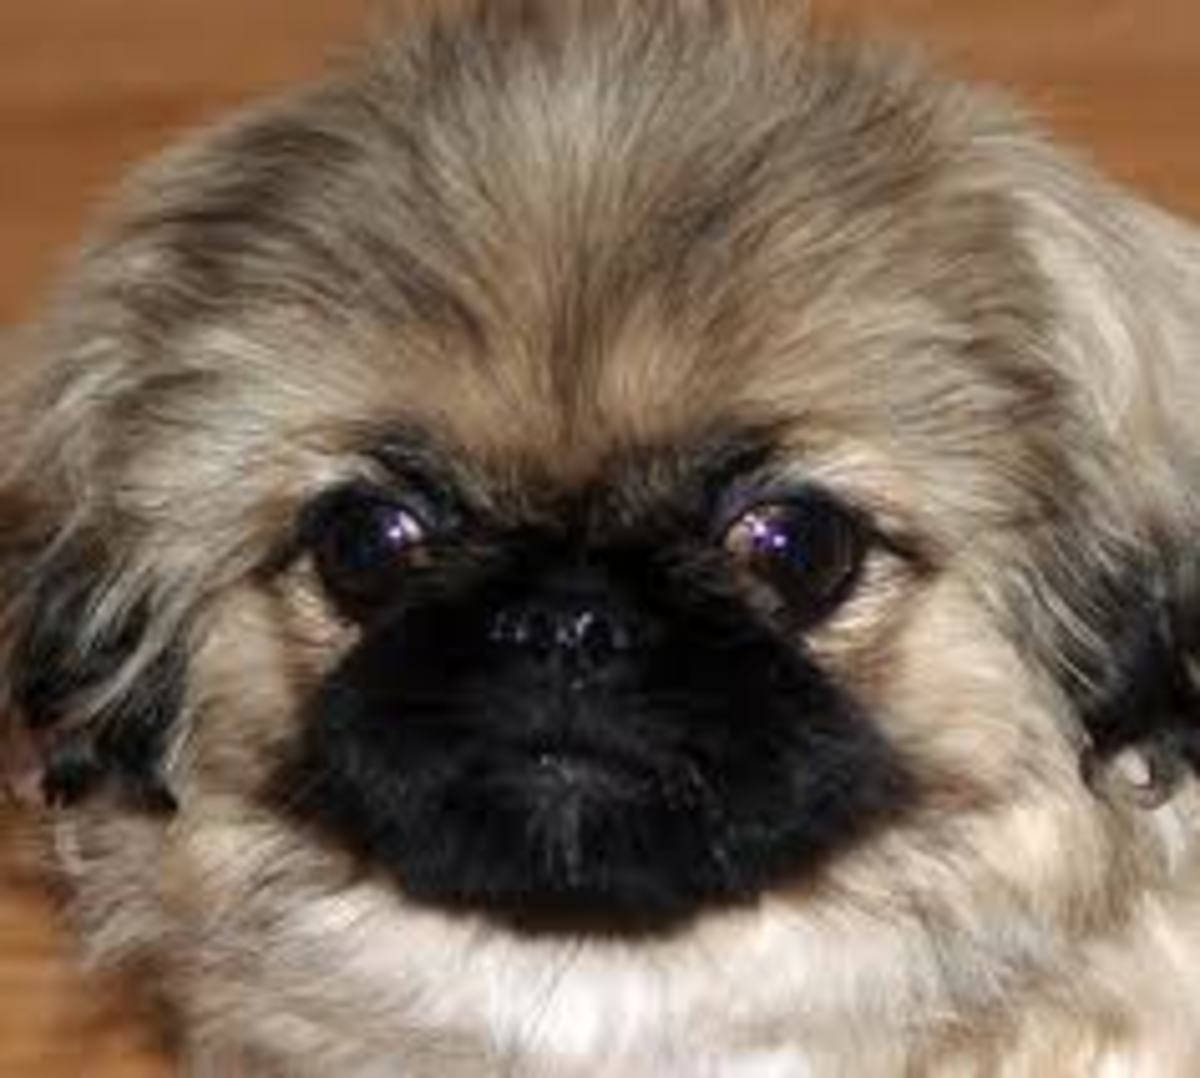 Pekingese dogs need lots of tender, loving care